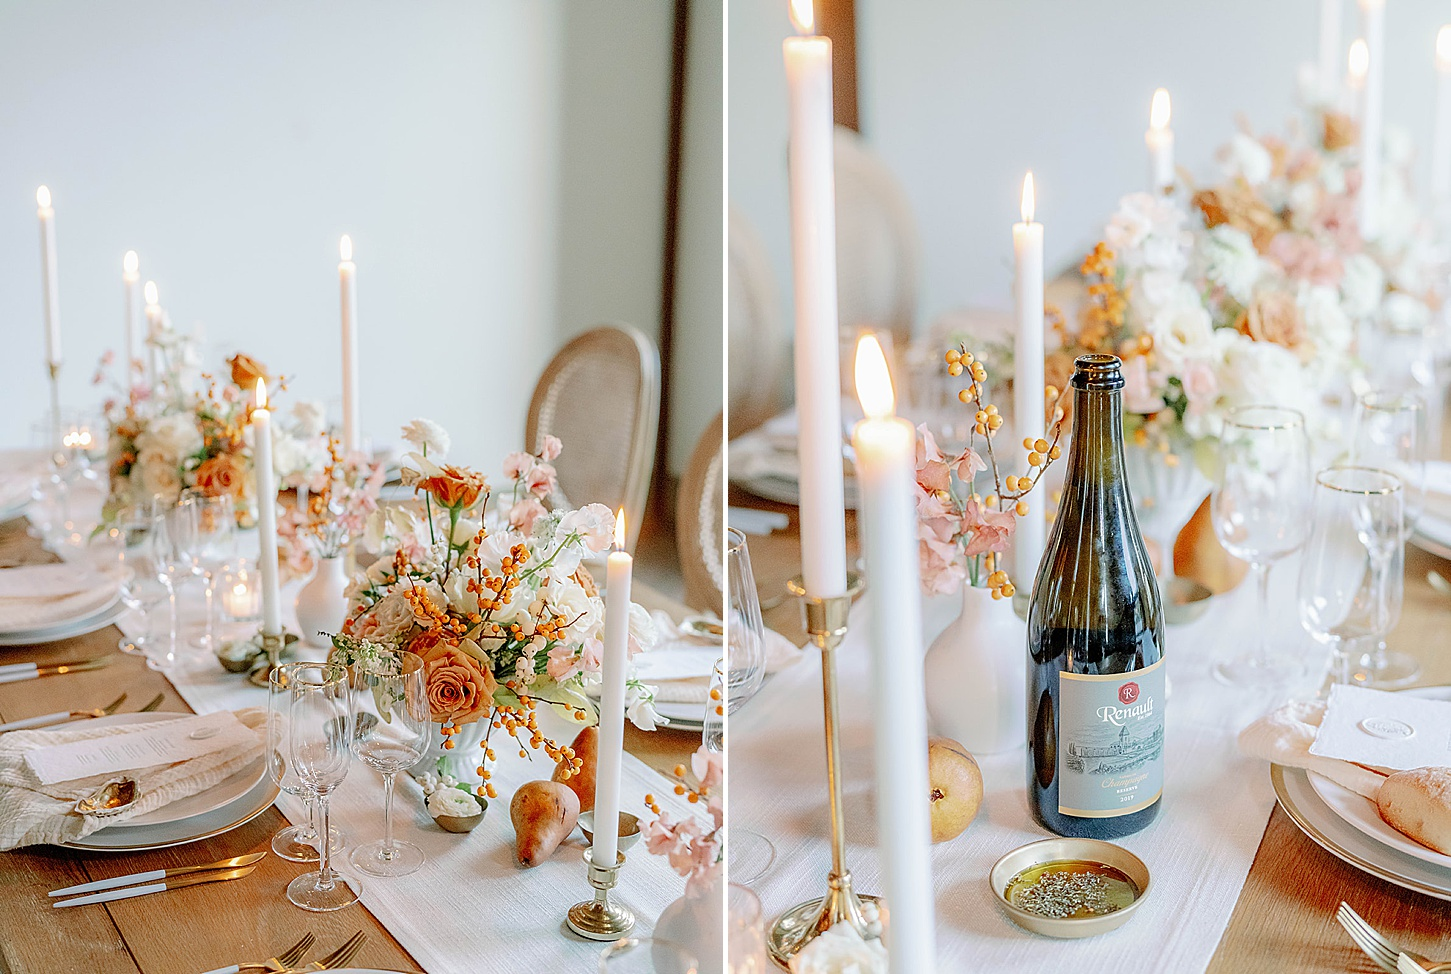 Renault Winery Wedding Photography by Magdalena Studios Magi Fisher x Renault Editorial 0053 1